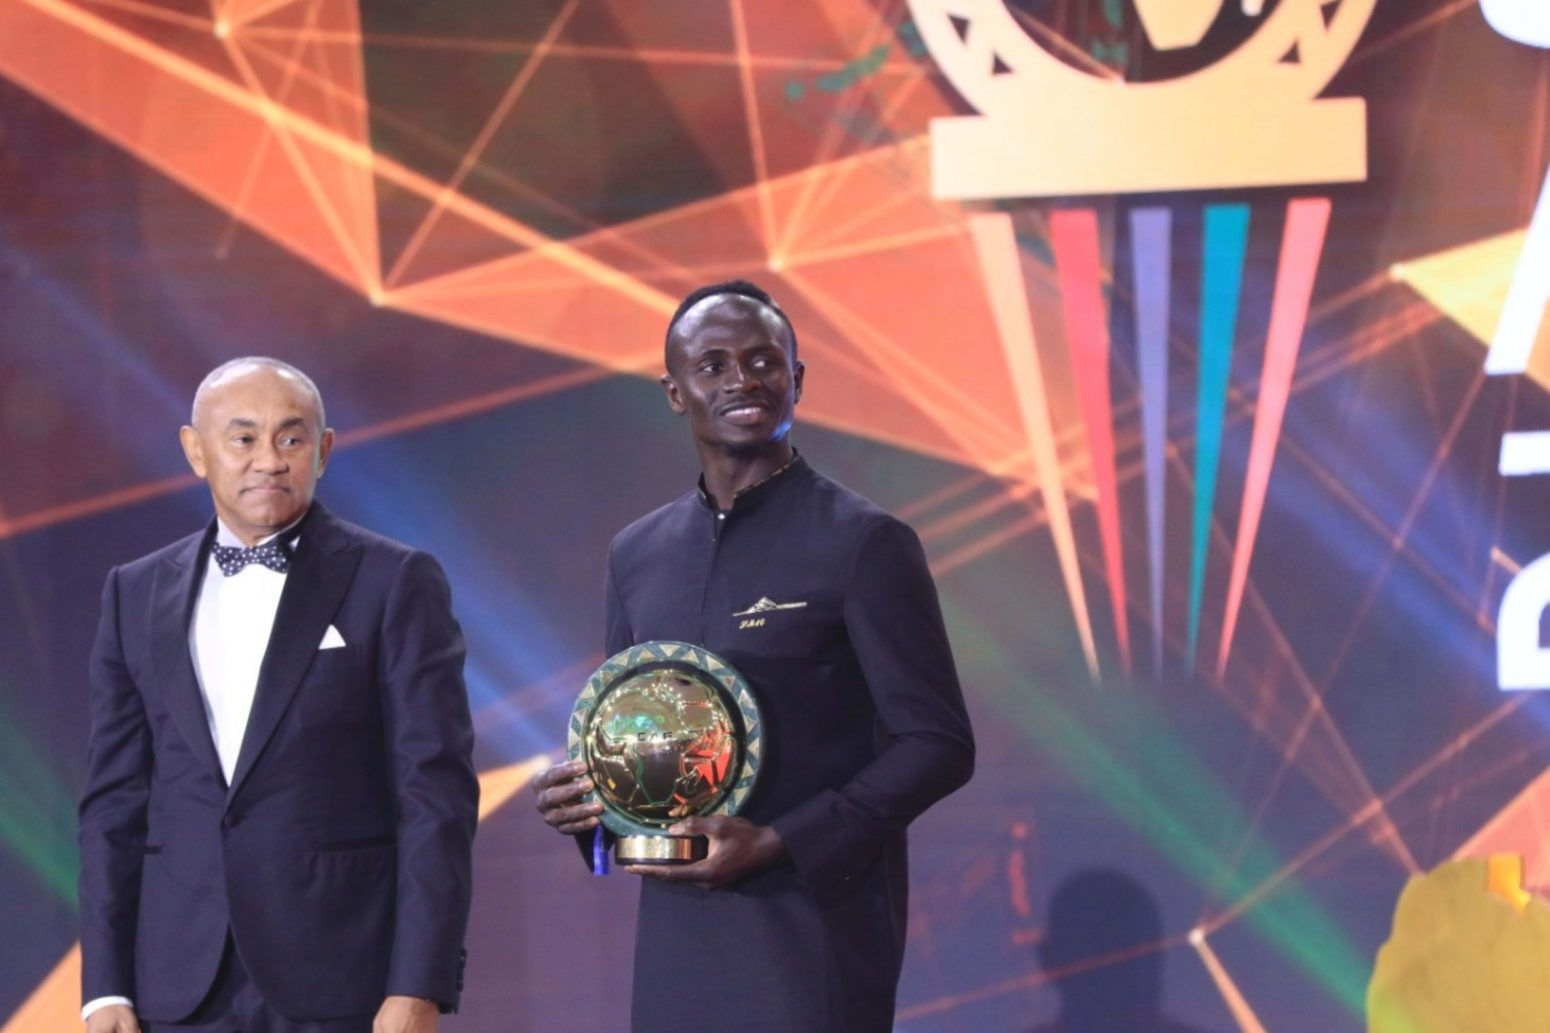 Sadio Mane wins African Player of the Year at CAF awards 2019